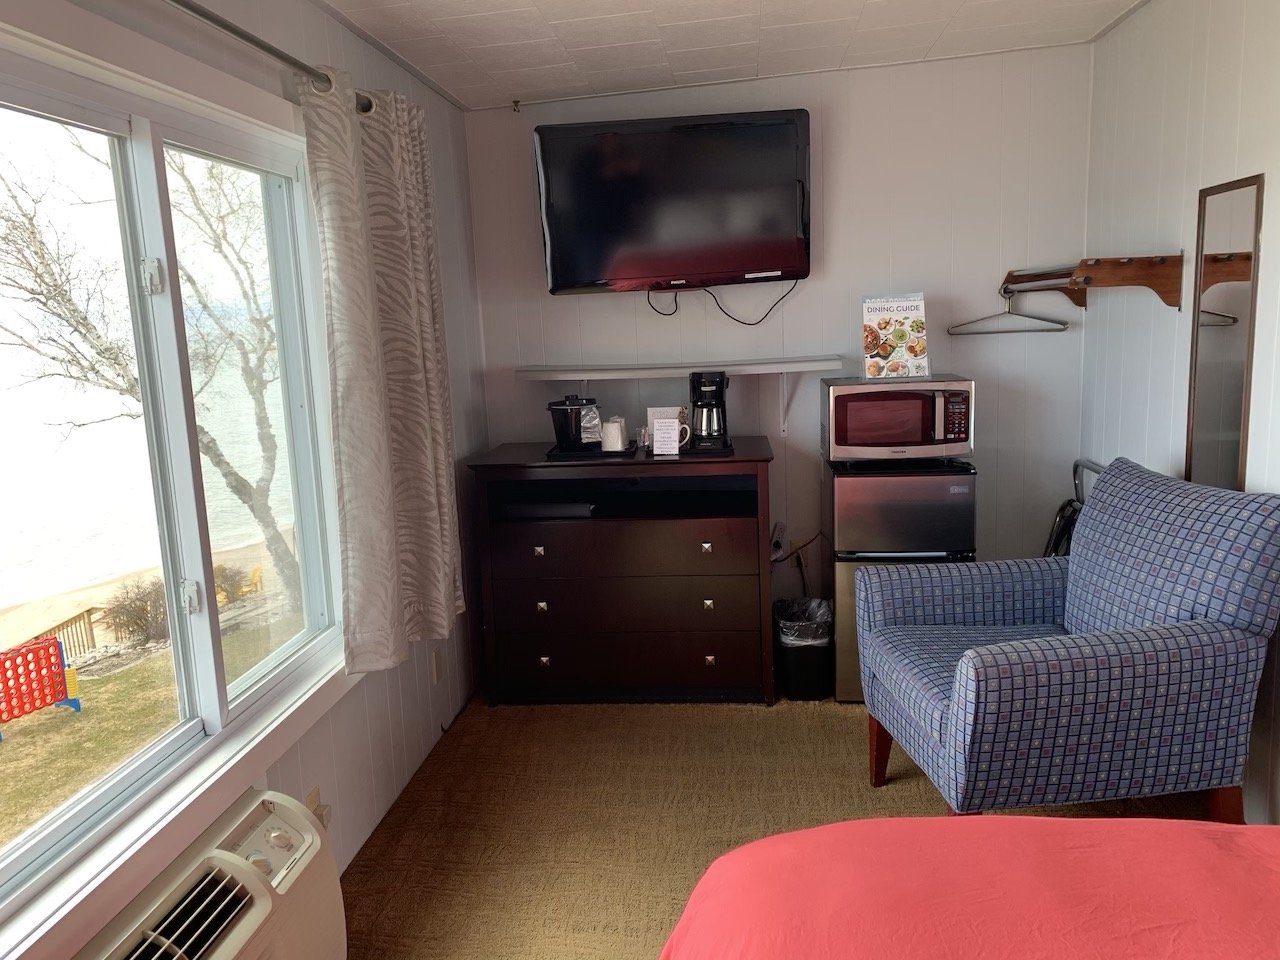 Room 201 Amenities Flat screen TV, Coffee Pot, Microwave and charging dock